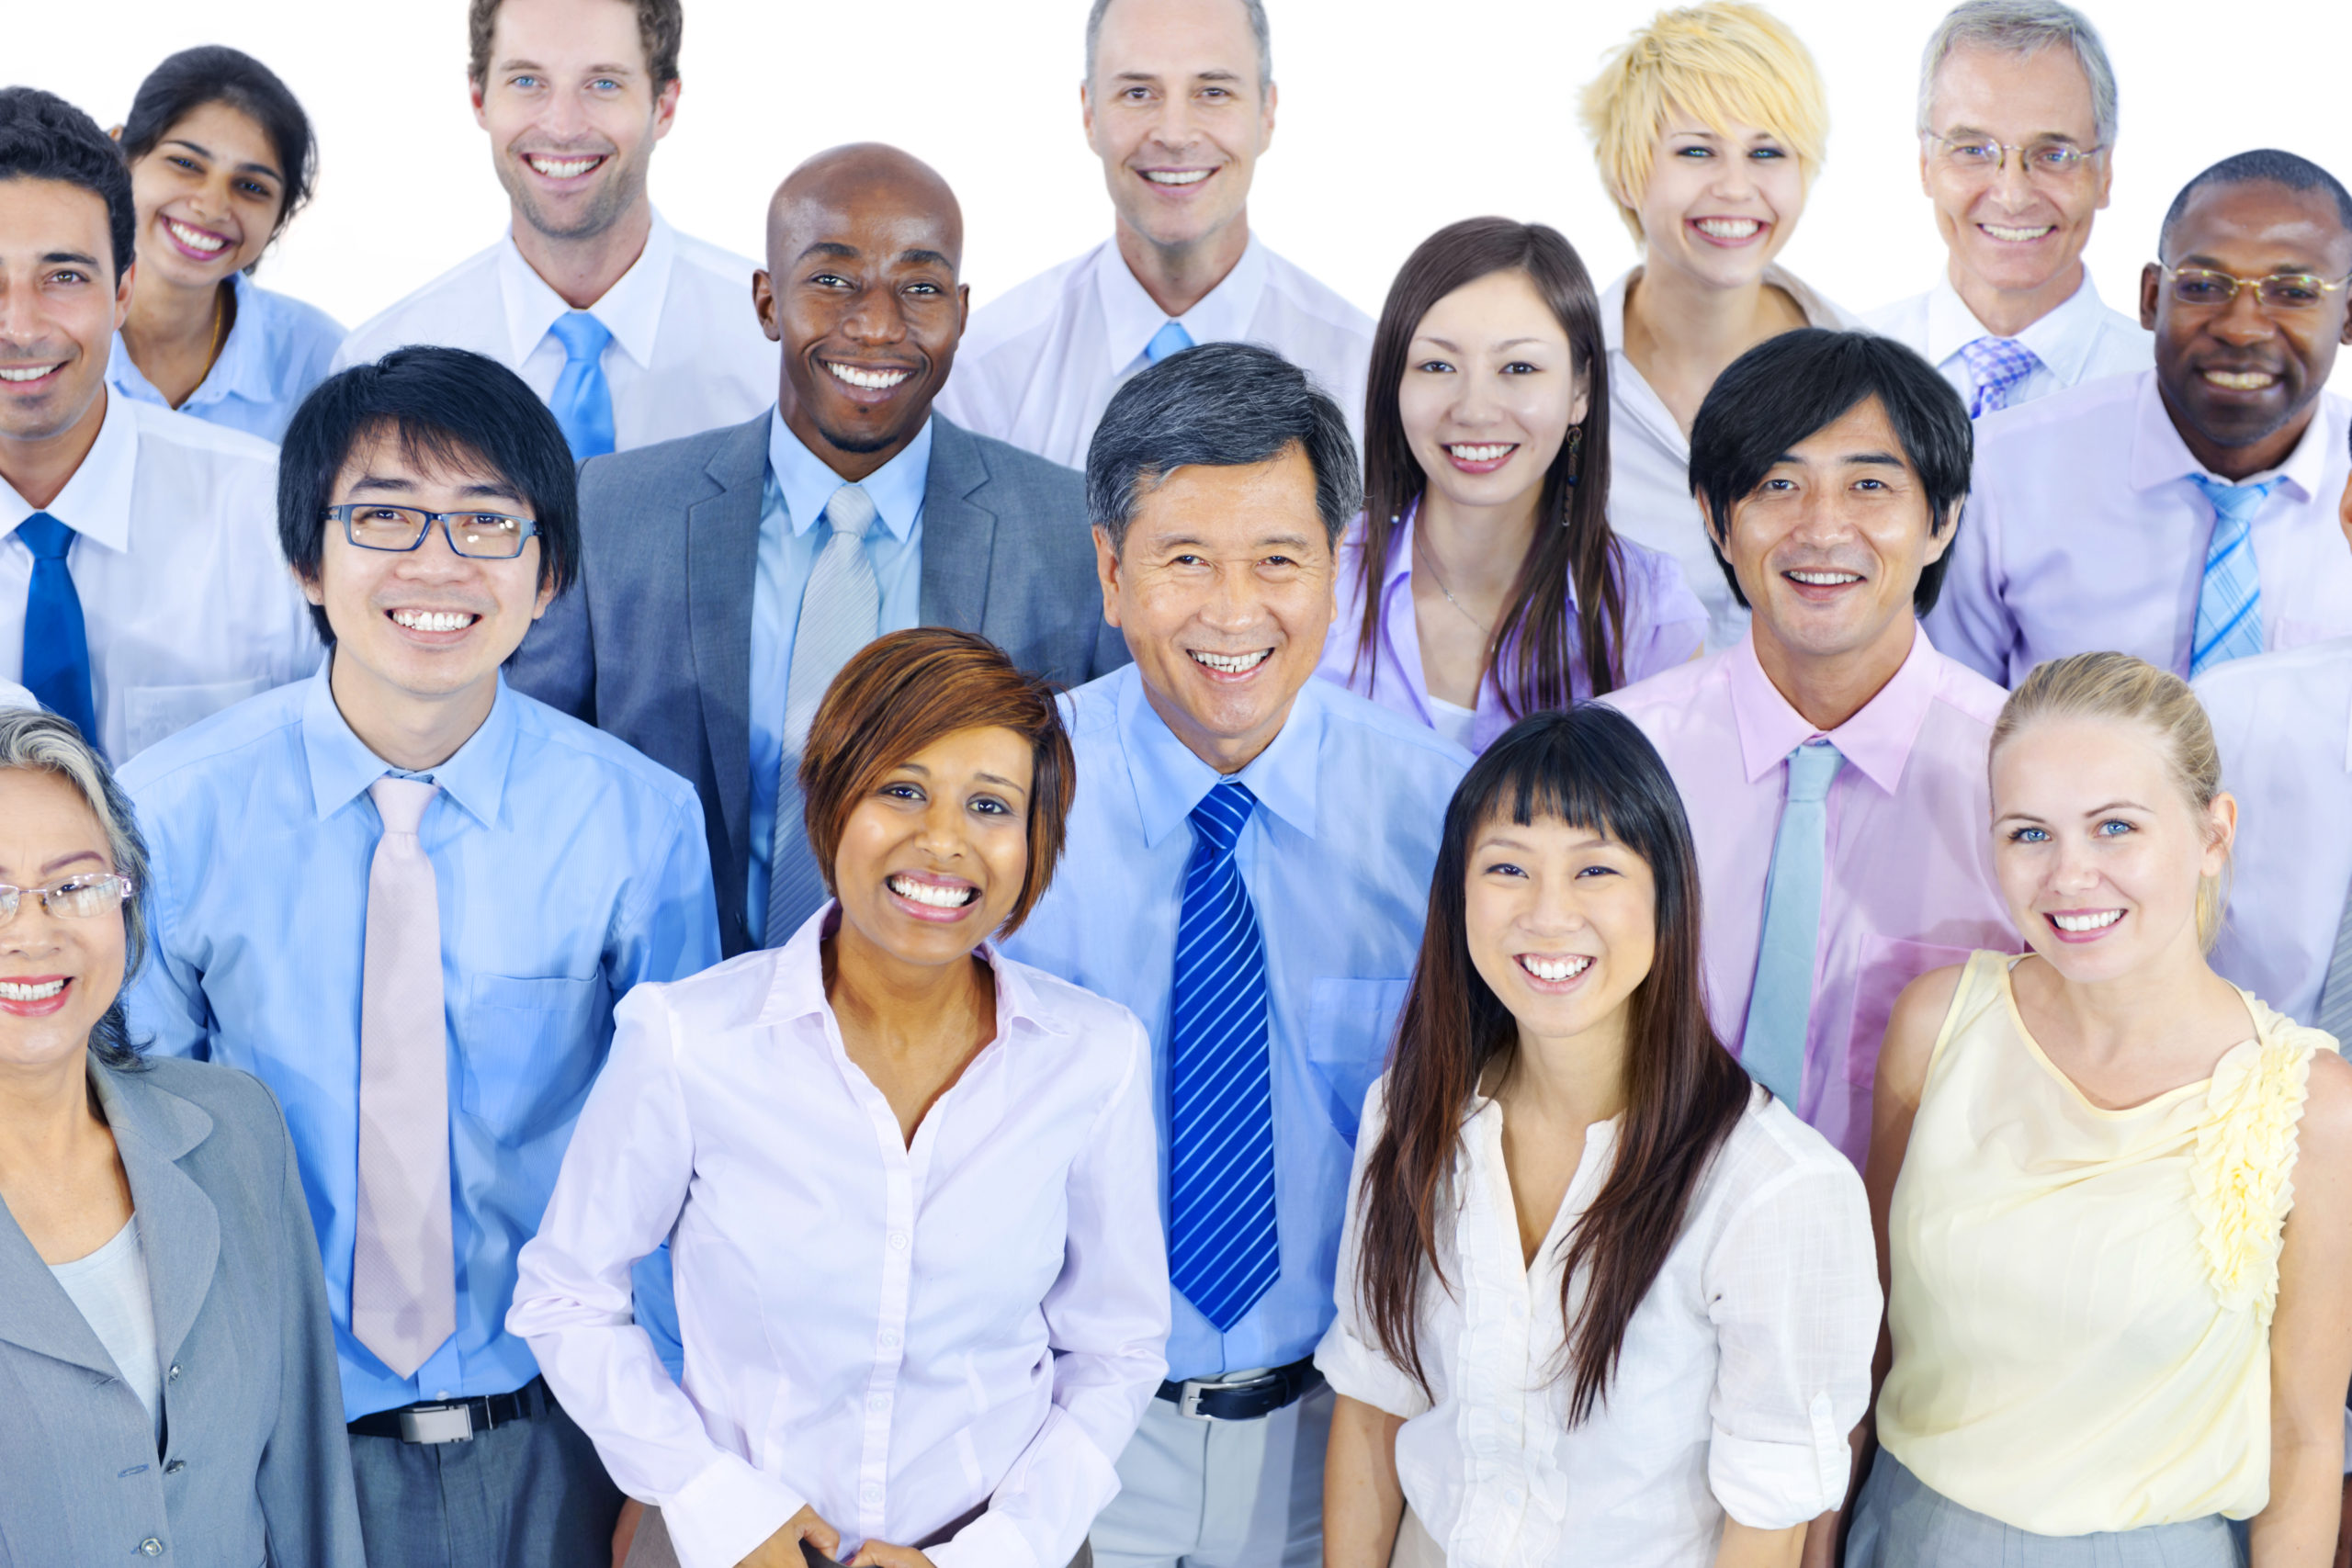 Diverse Group of Business People